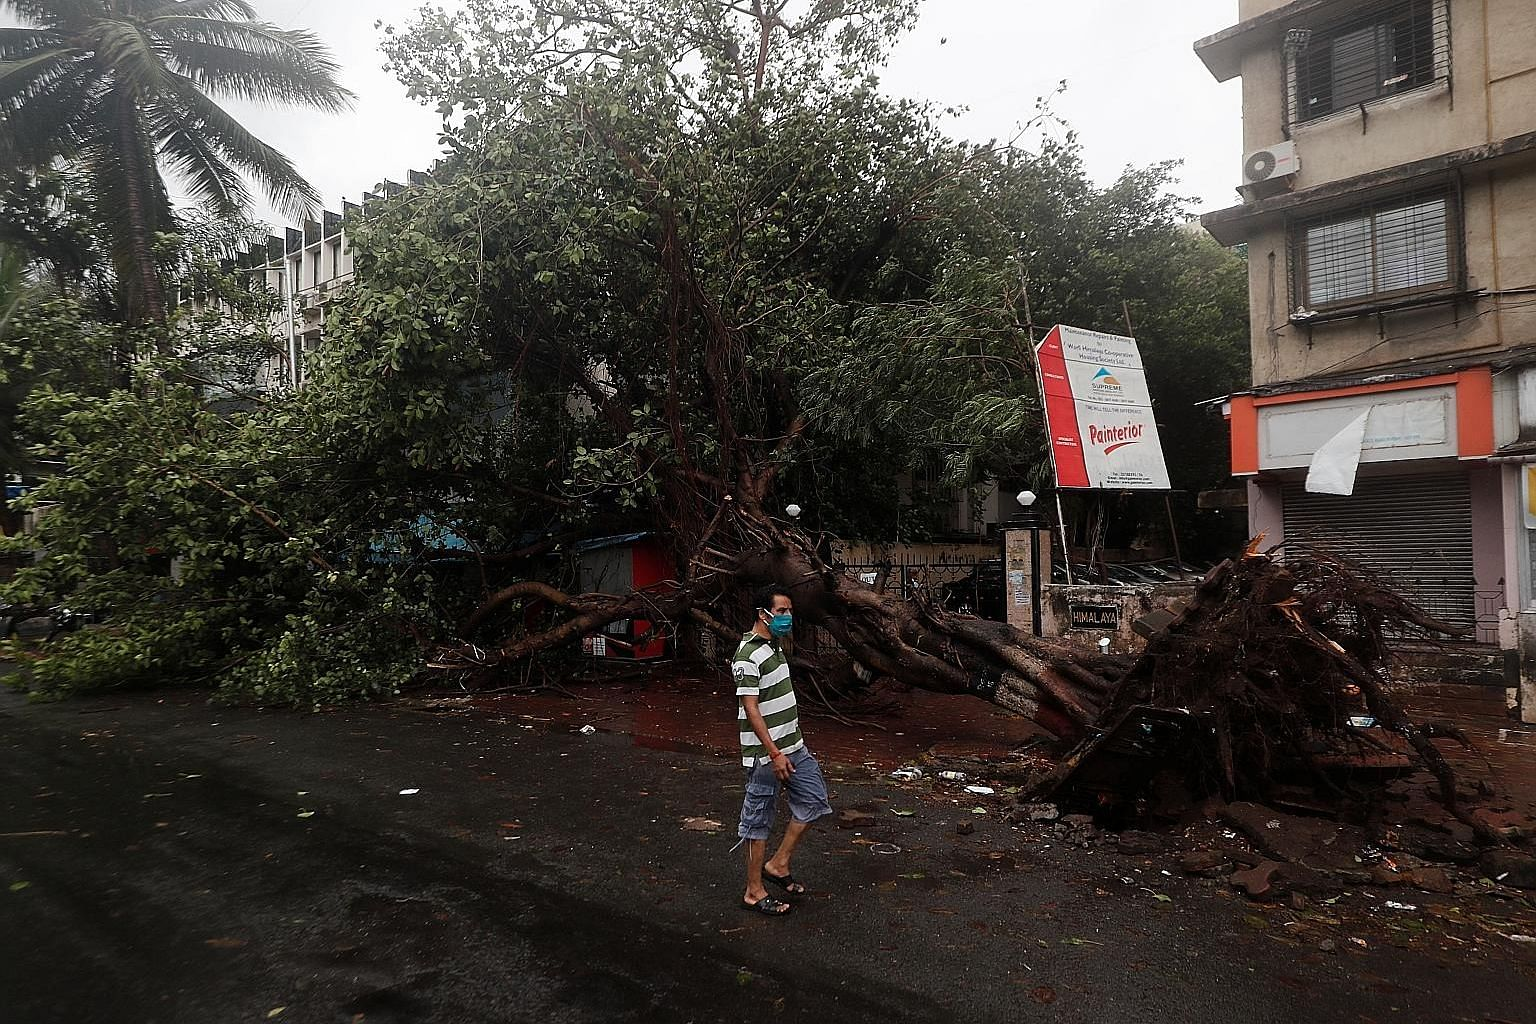 Above, left: Strong winds toppled some trees in Mumbai, which also experienced downpours throughout the afternoon yesterday, after Cyclone Nisarga made landfall about 100km south of India's financial capital. Left: A team from India's National Disast